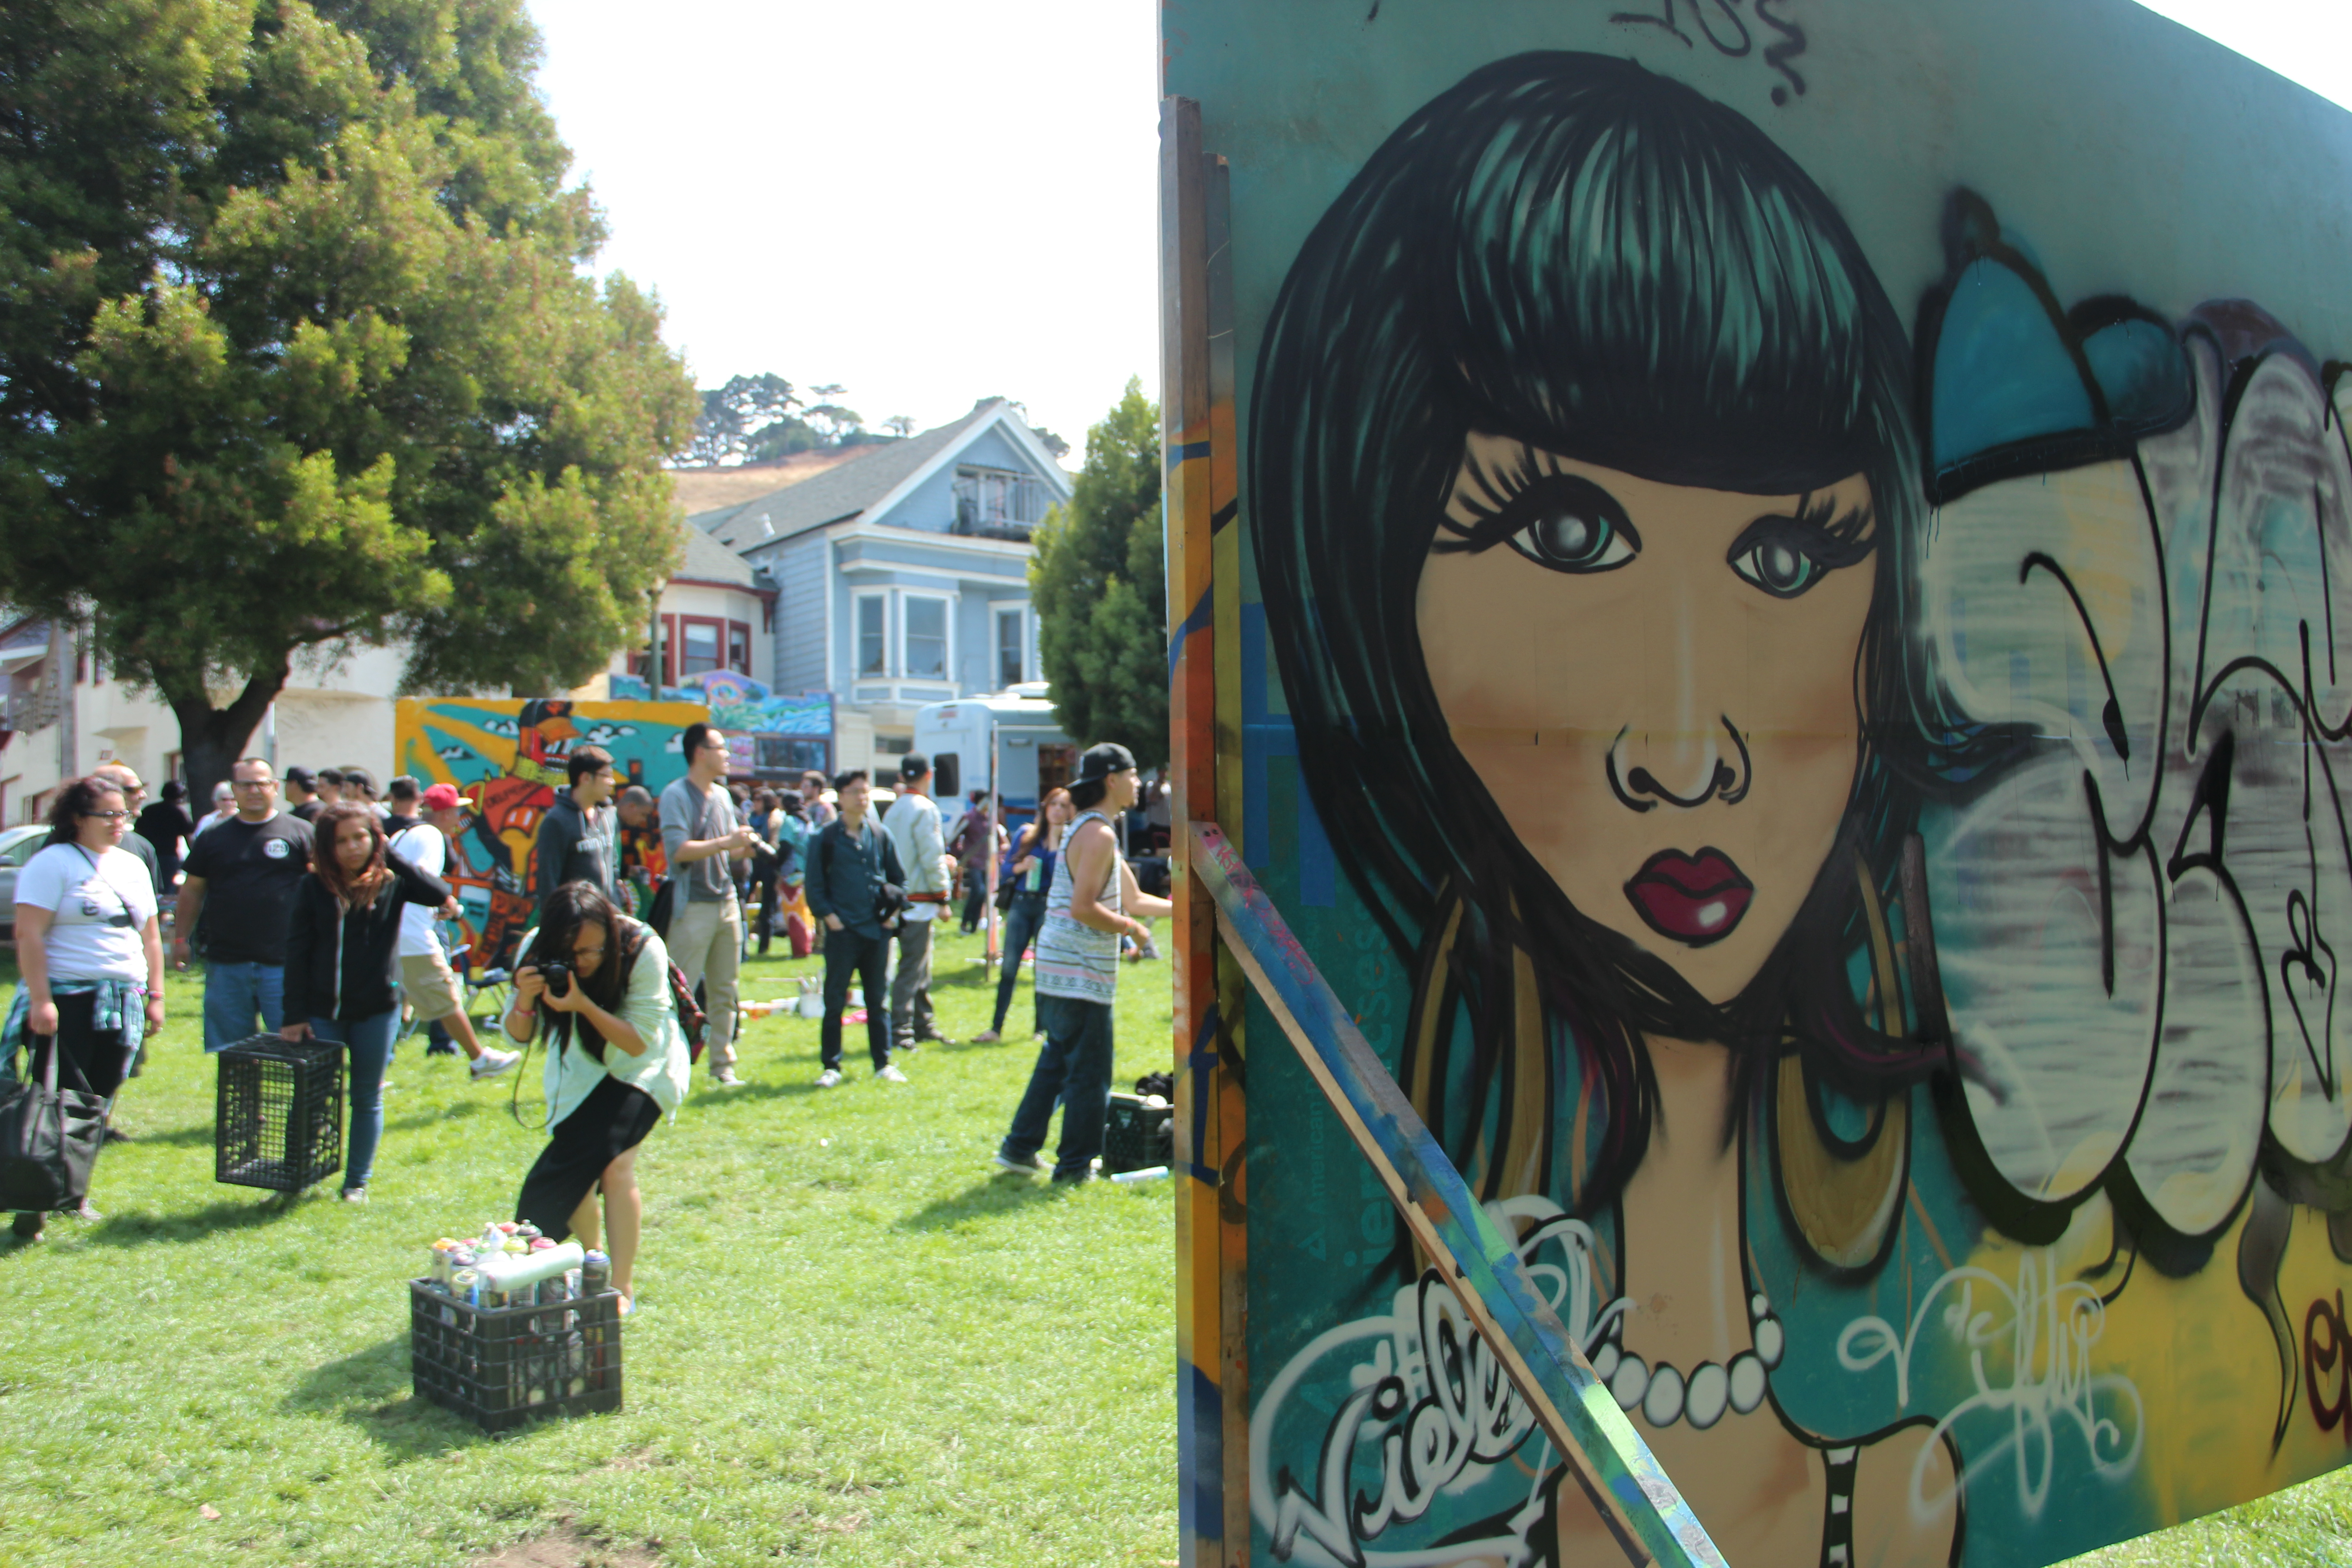 Creativity Flows at Graffiti Arts Festival